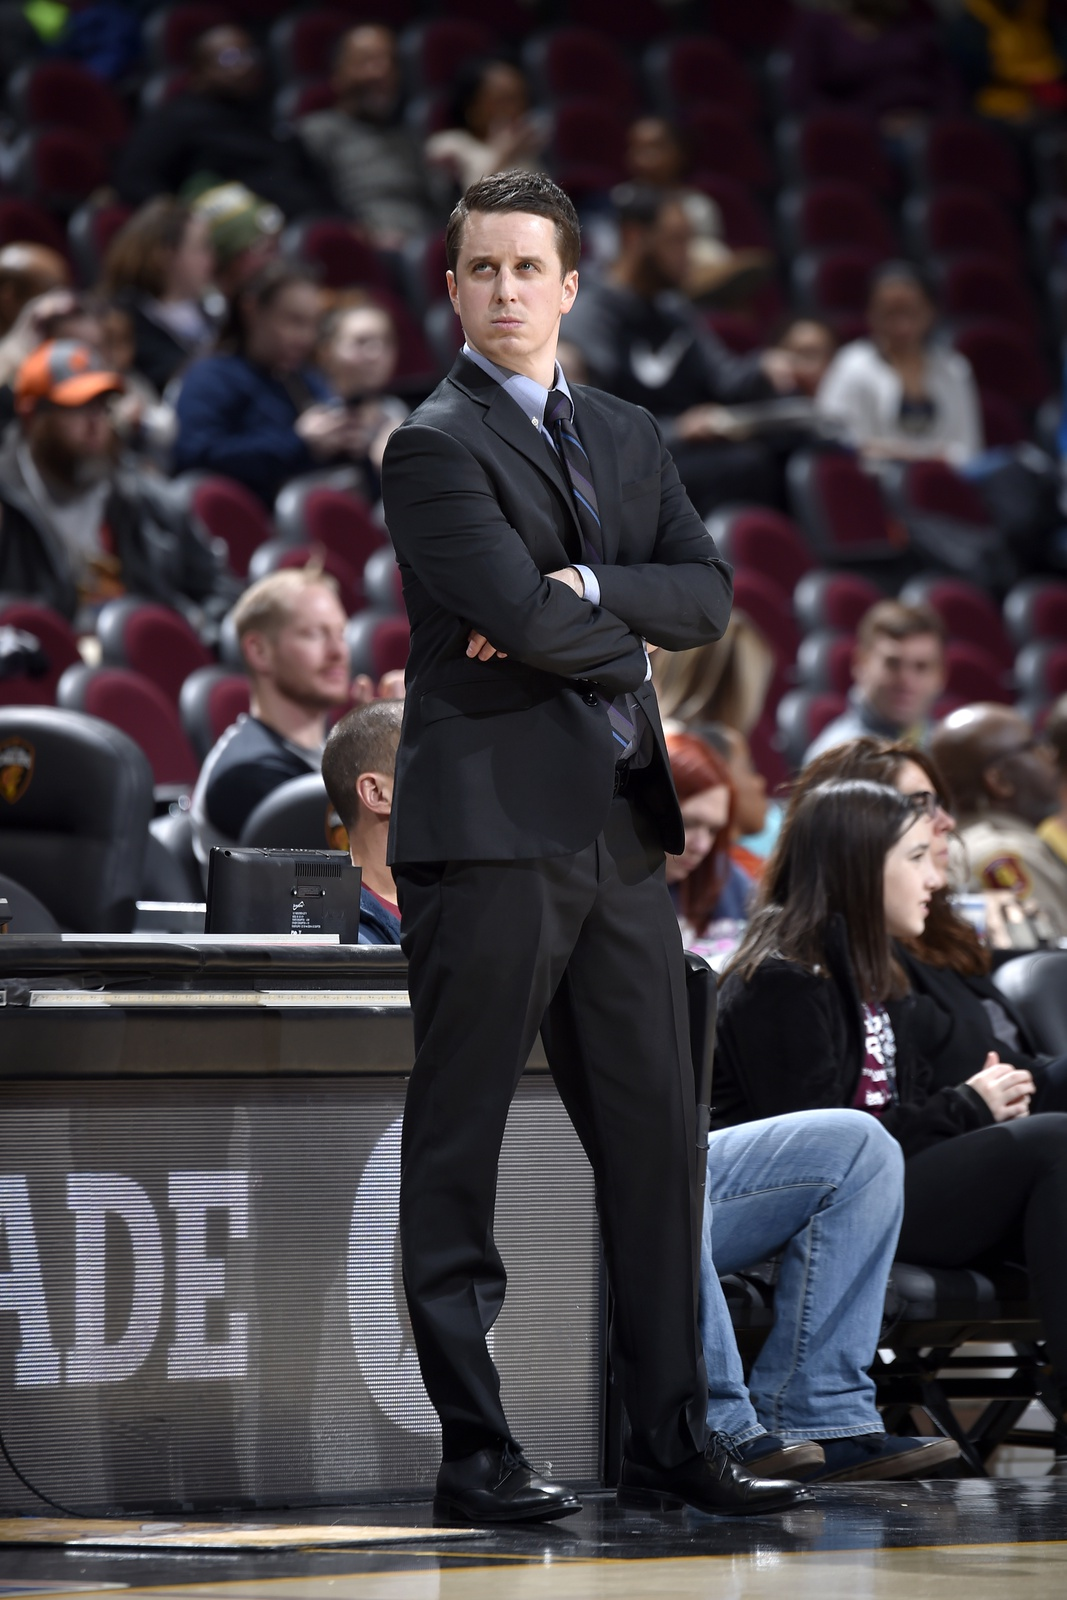 Head Coach Charlie Henry of the Windy City Bulls looks on during the game against the Canton Charge during the NBA G League on February 2, 2019 at Quicken Loans Arena in Cleveland, Ohio.